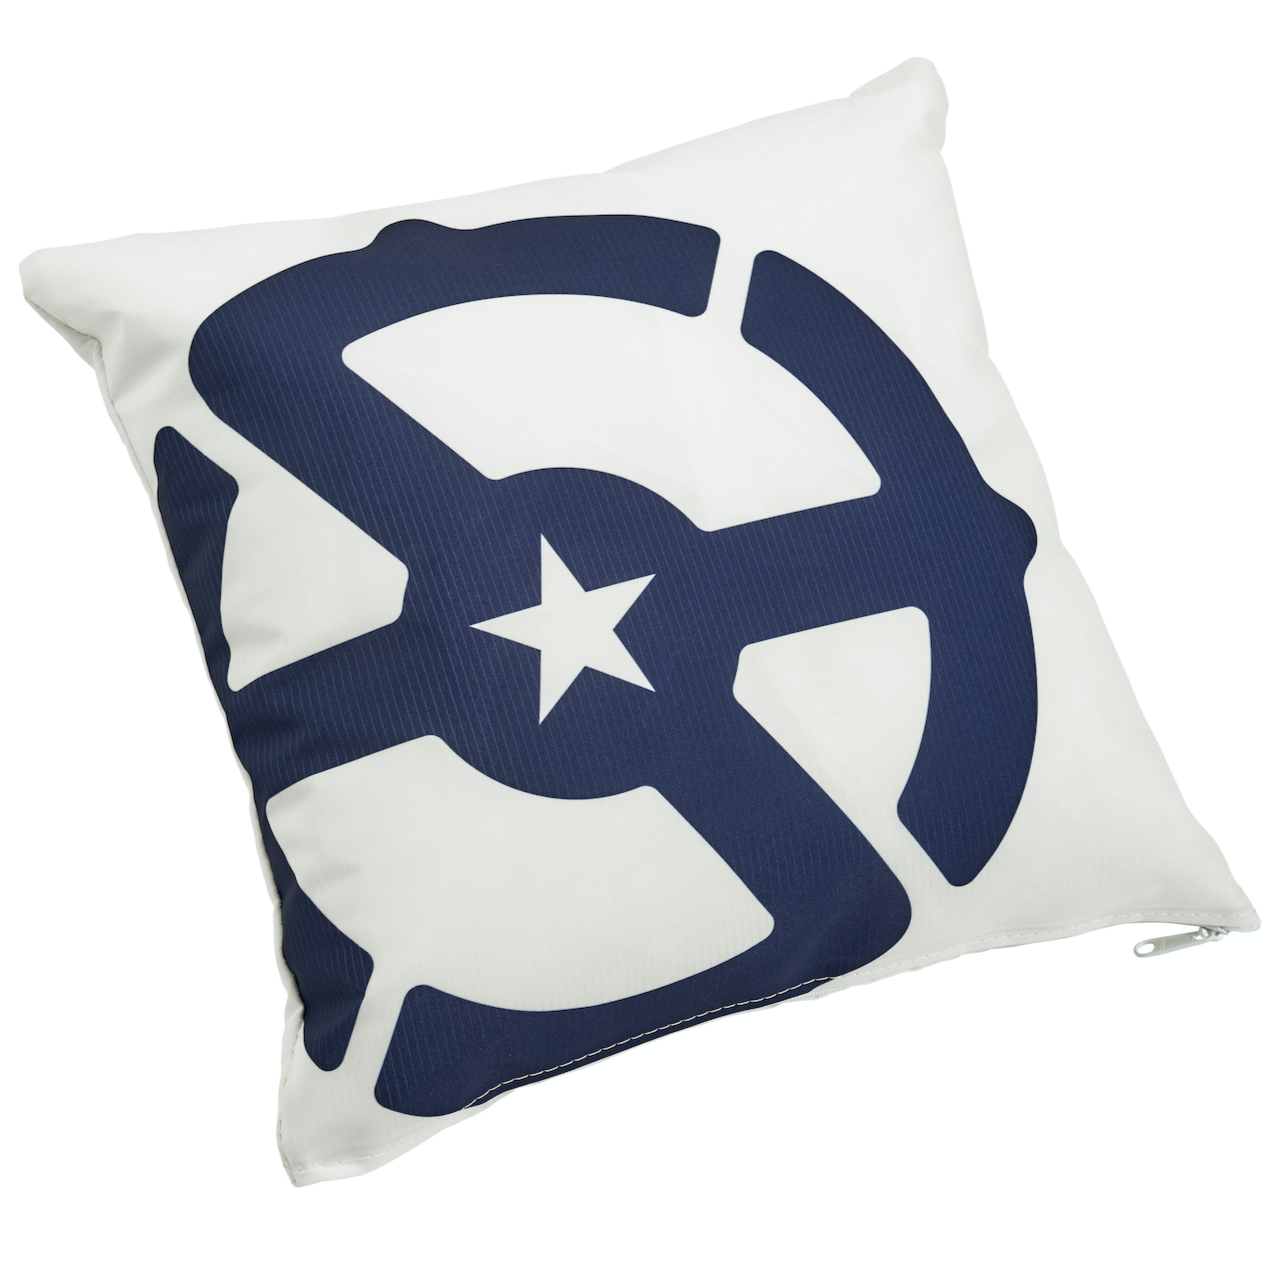 Recycled Sail Pillow by Sea Bags